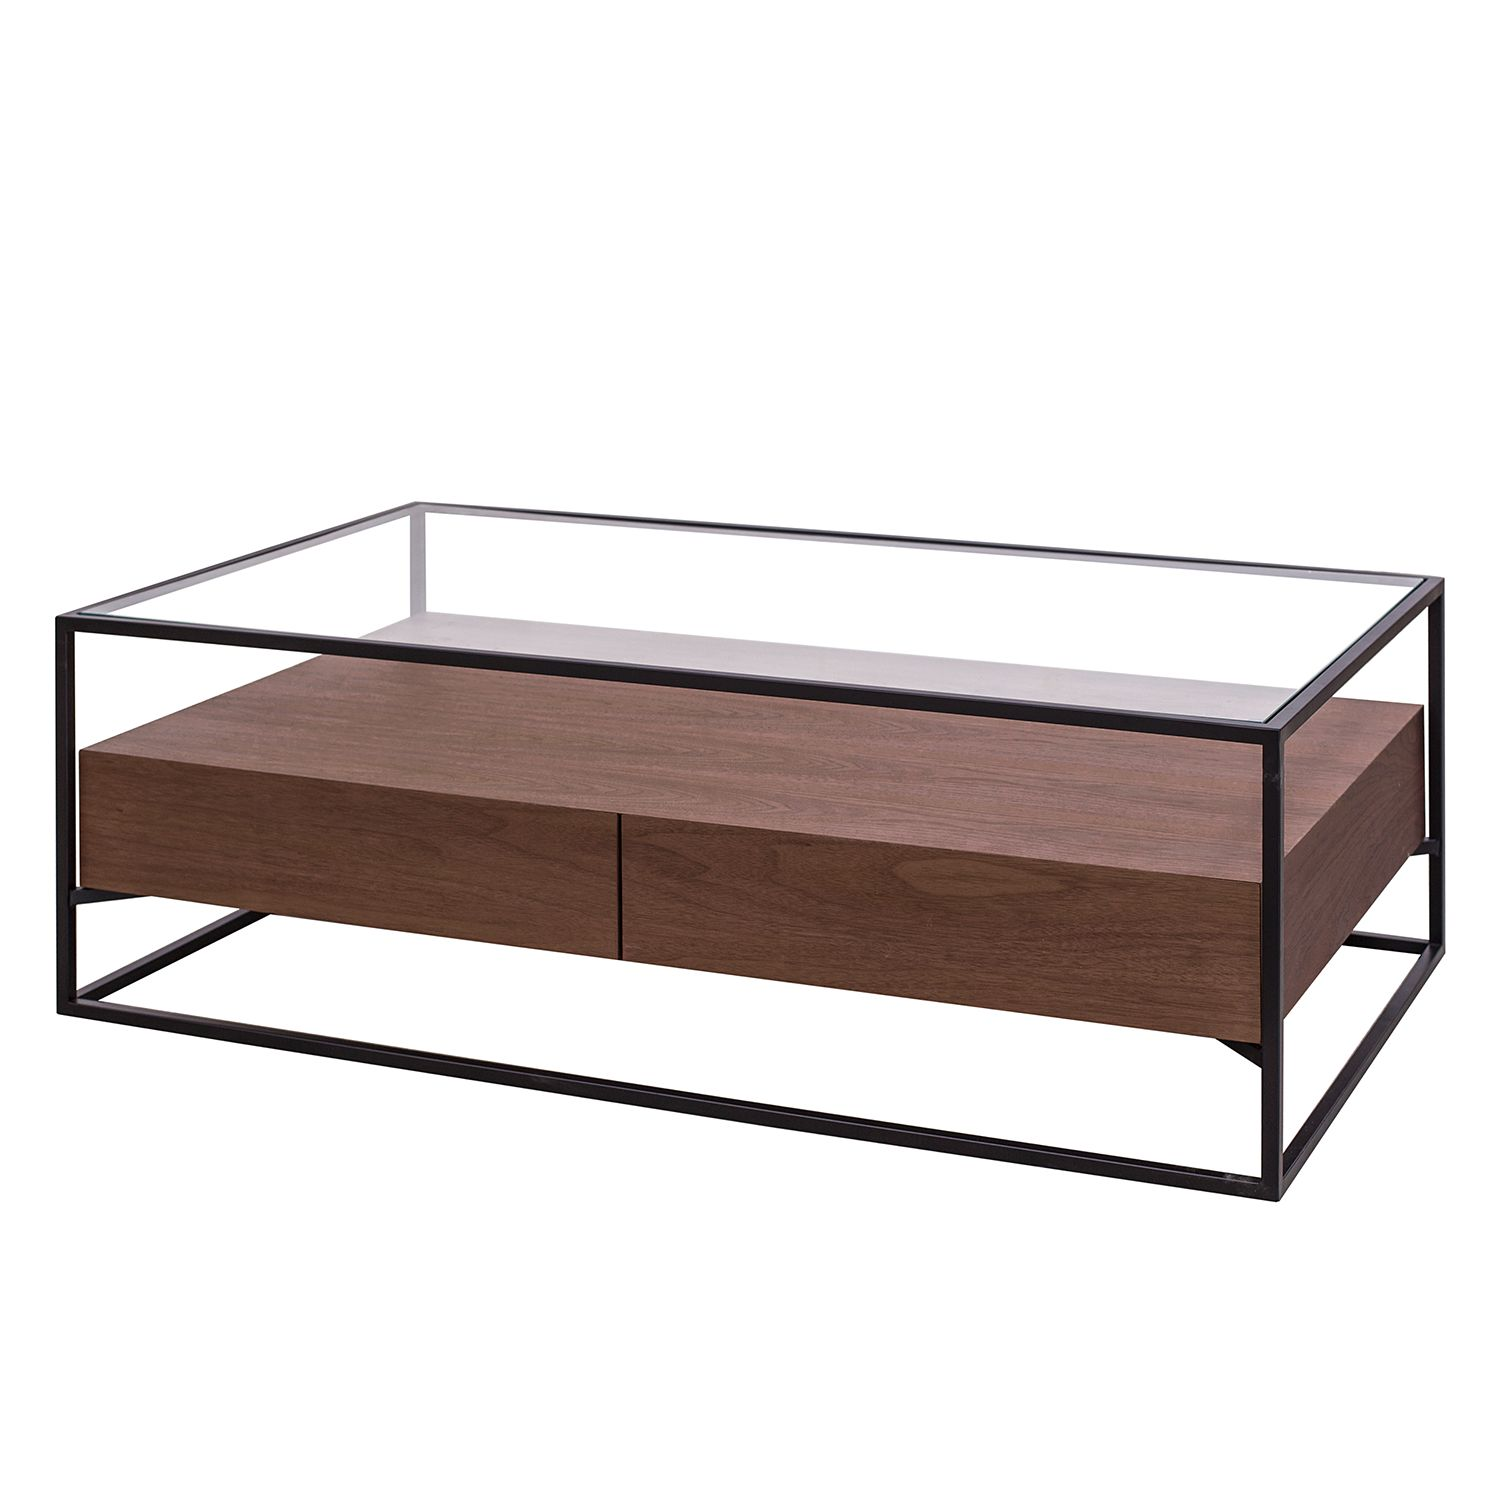 Table basse Rizzo